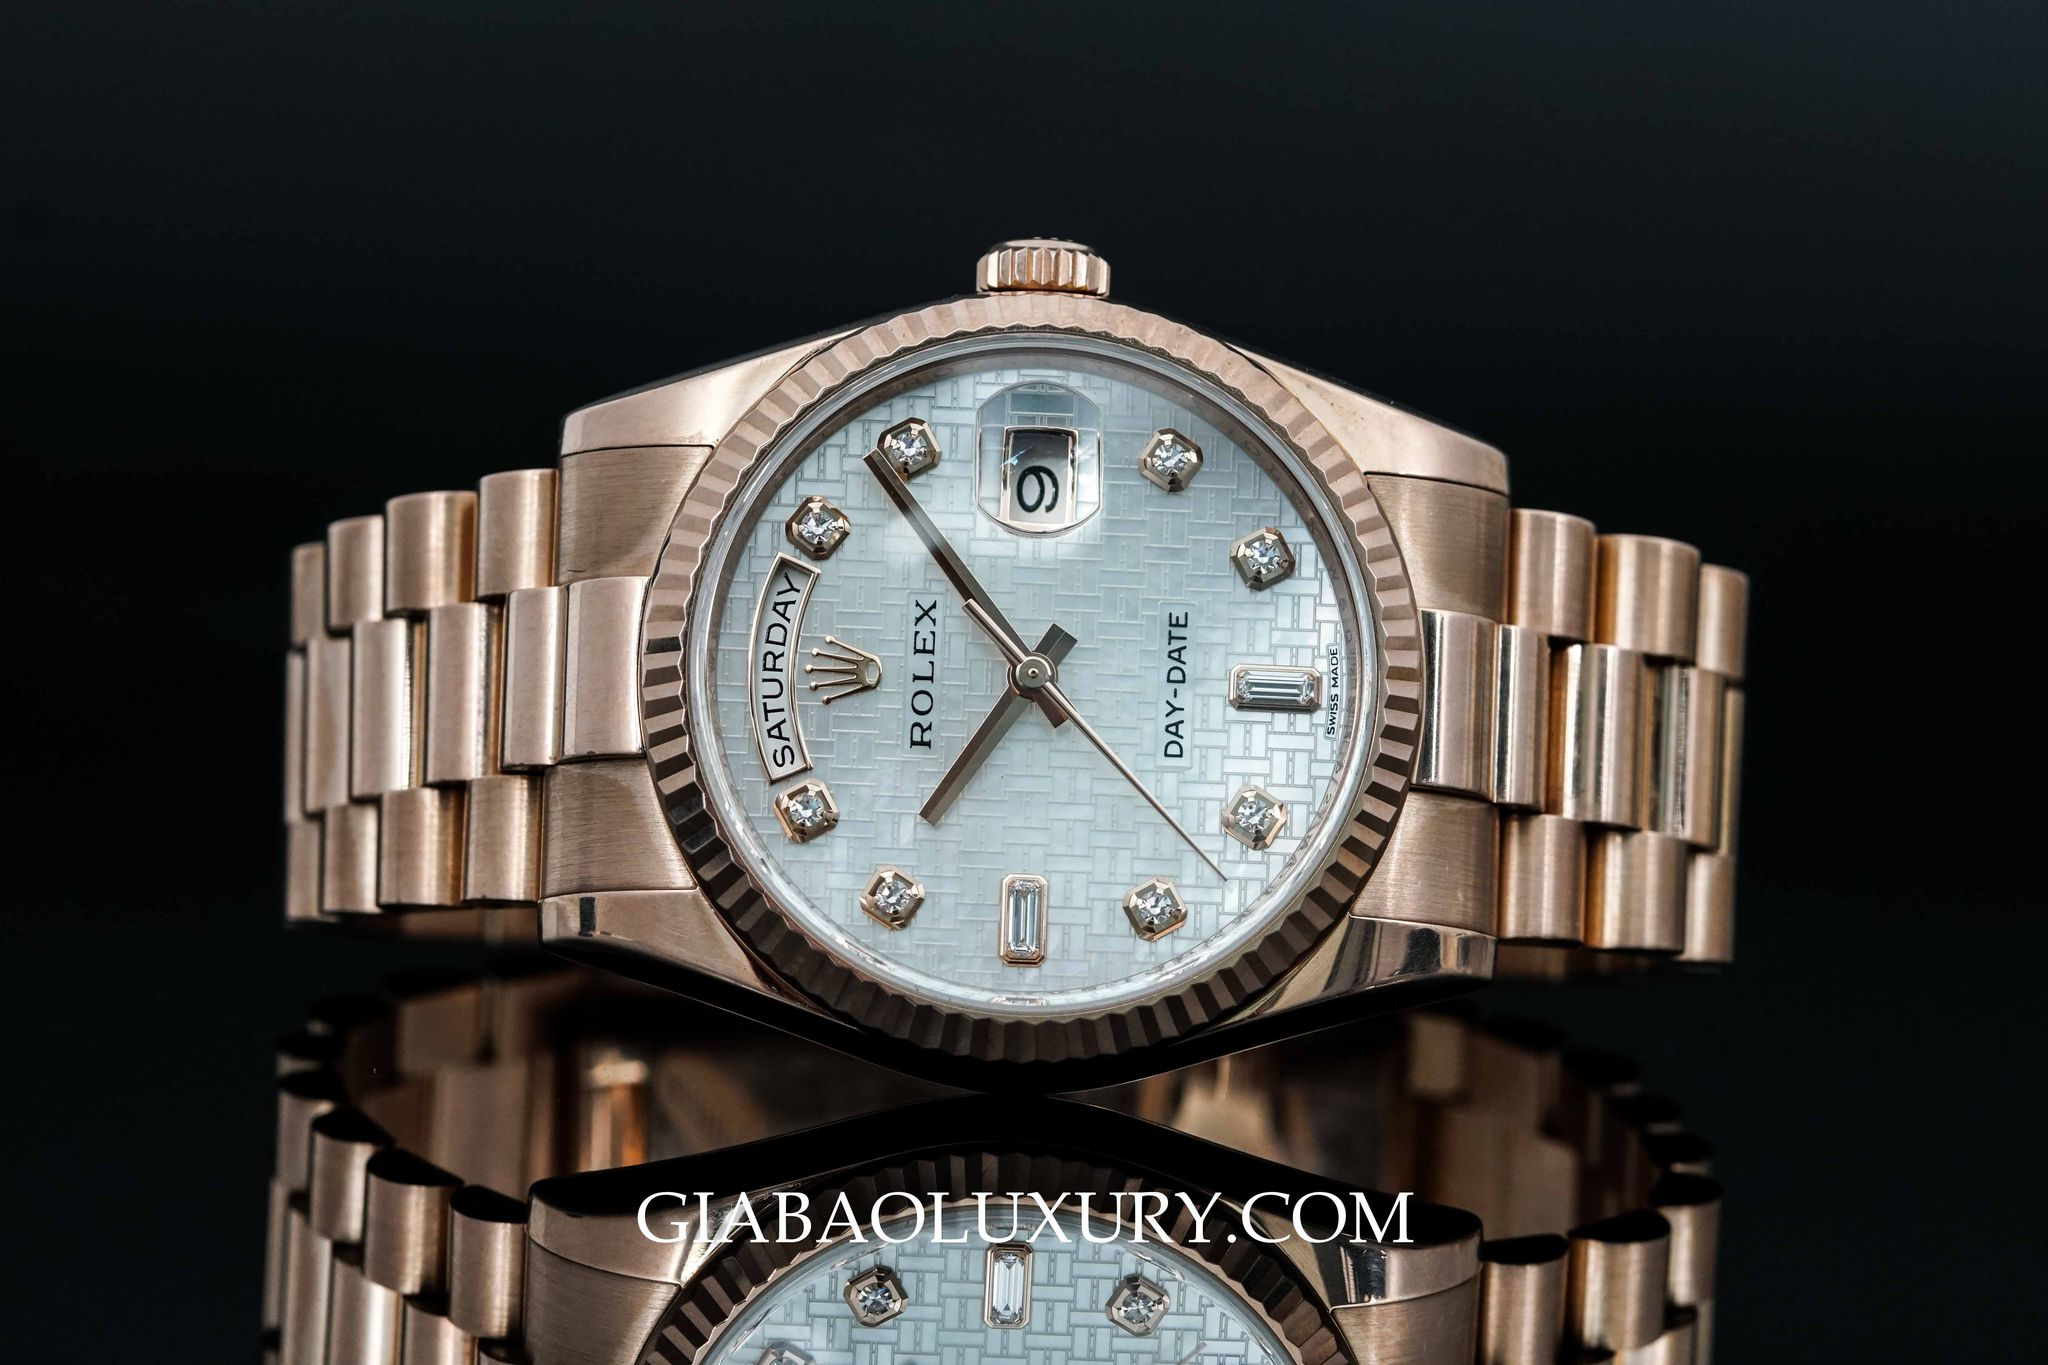 Đồng hồ Rolex Oyster Perpetual Day-Date 11235 mặt khảm trai họa tiết